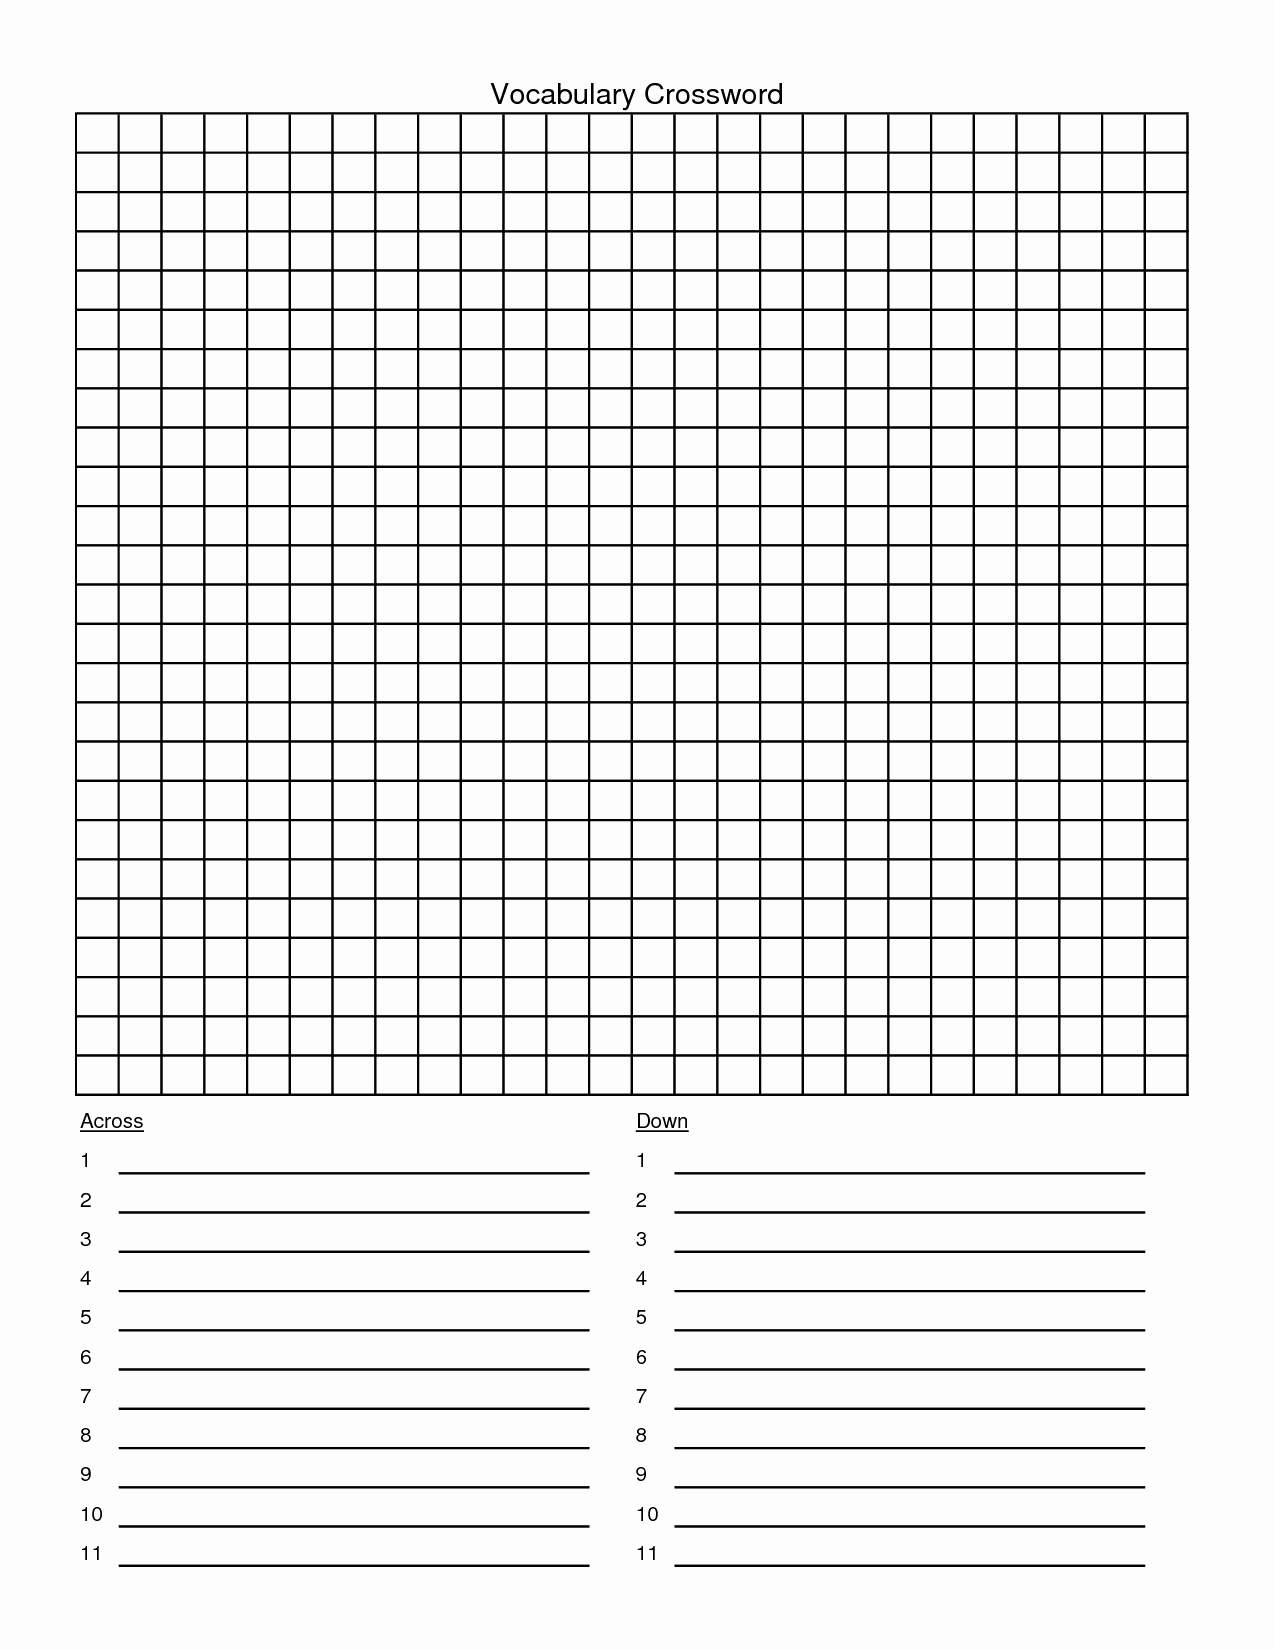 Word Search Template Blank – Amandae.ca - Printable Crossword Puzzle Grid